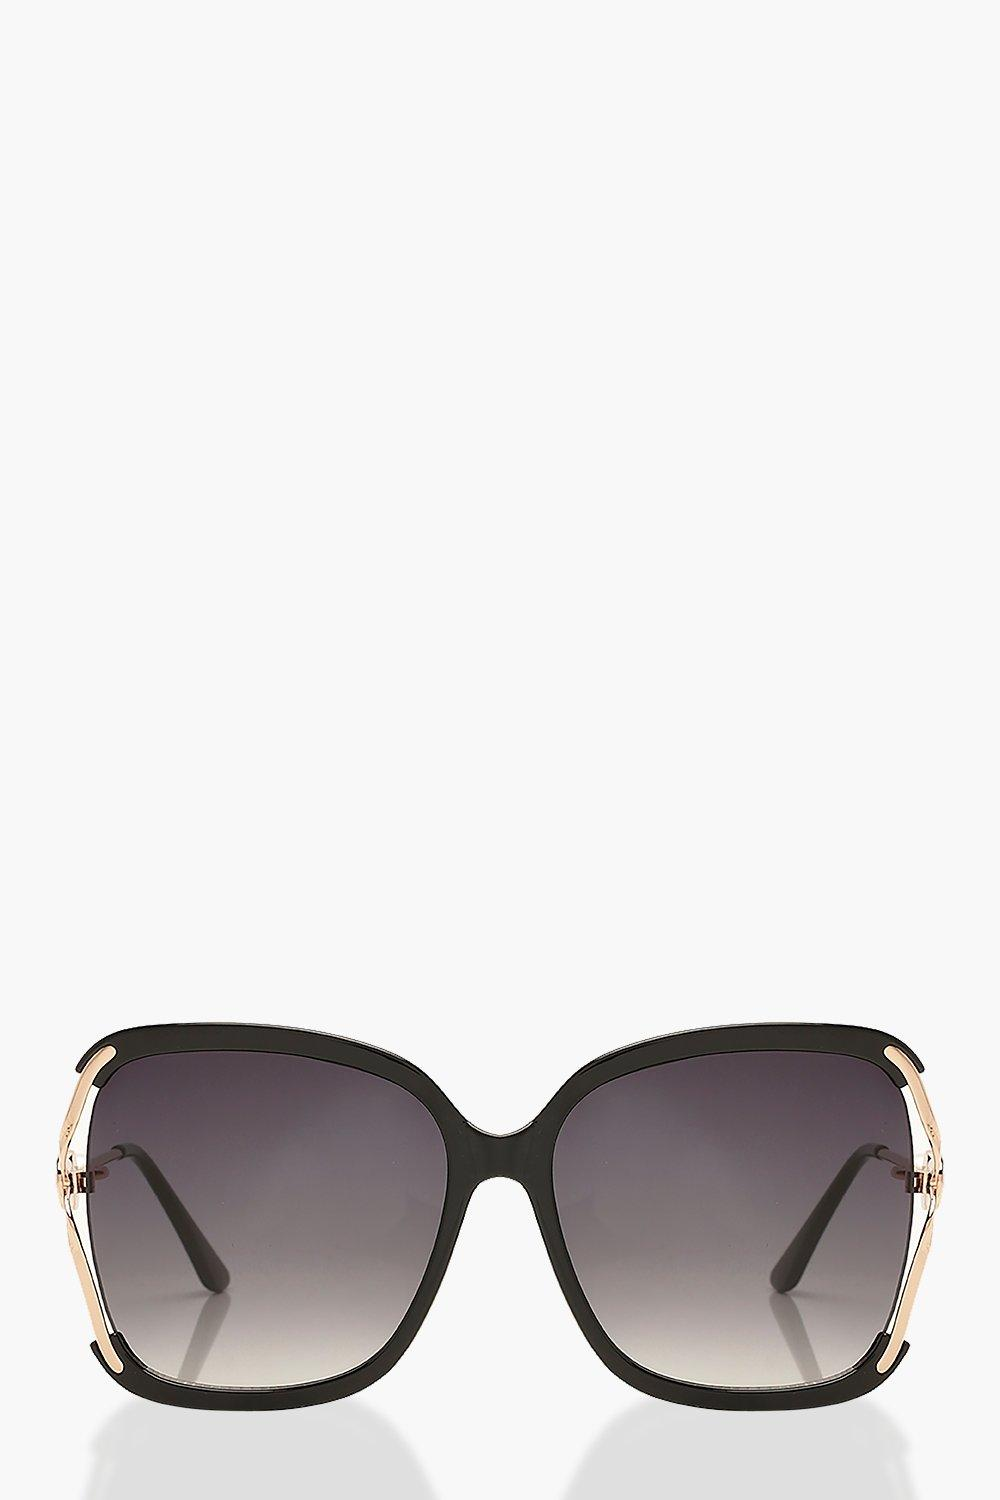 boohoo Womens Oversized Pearl Detail Sunglasses - Black - One Size, Black